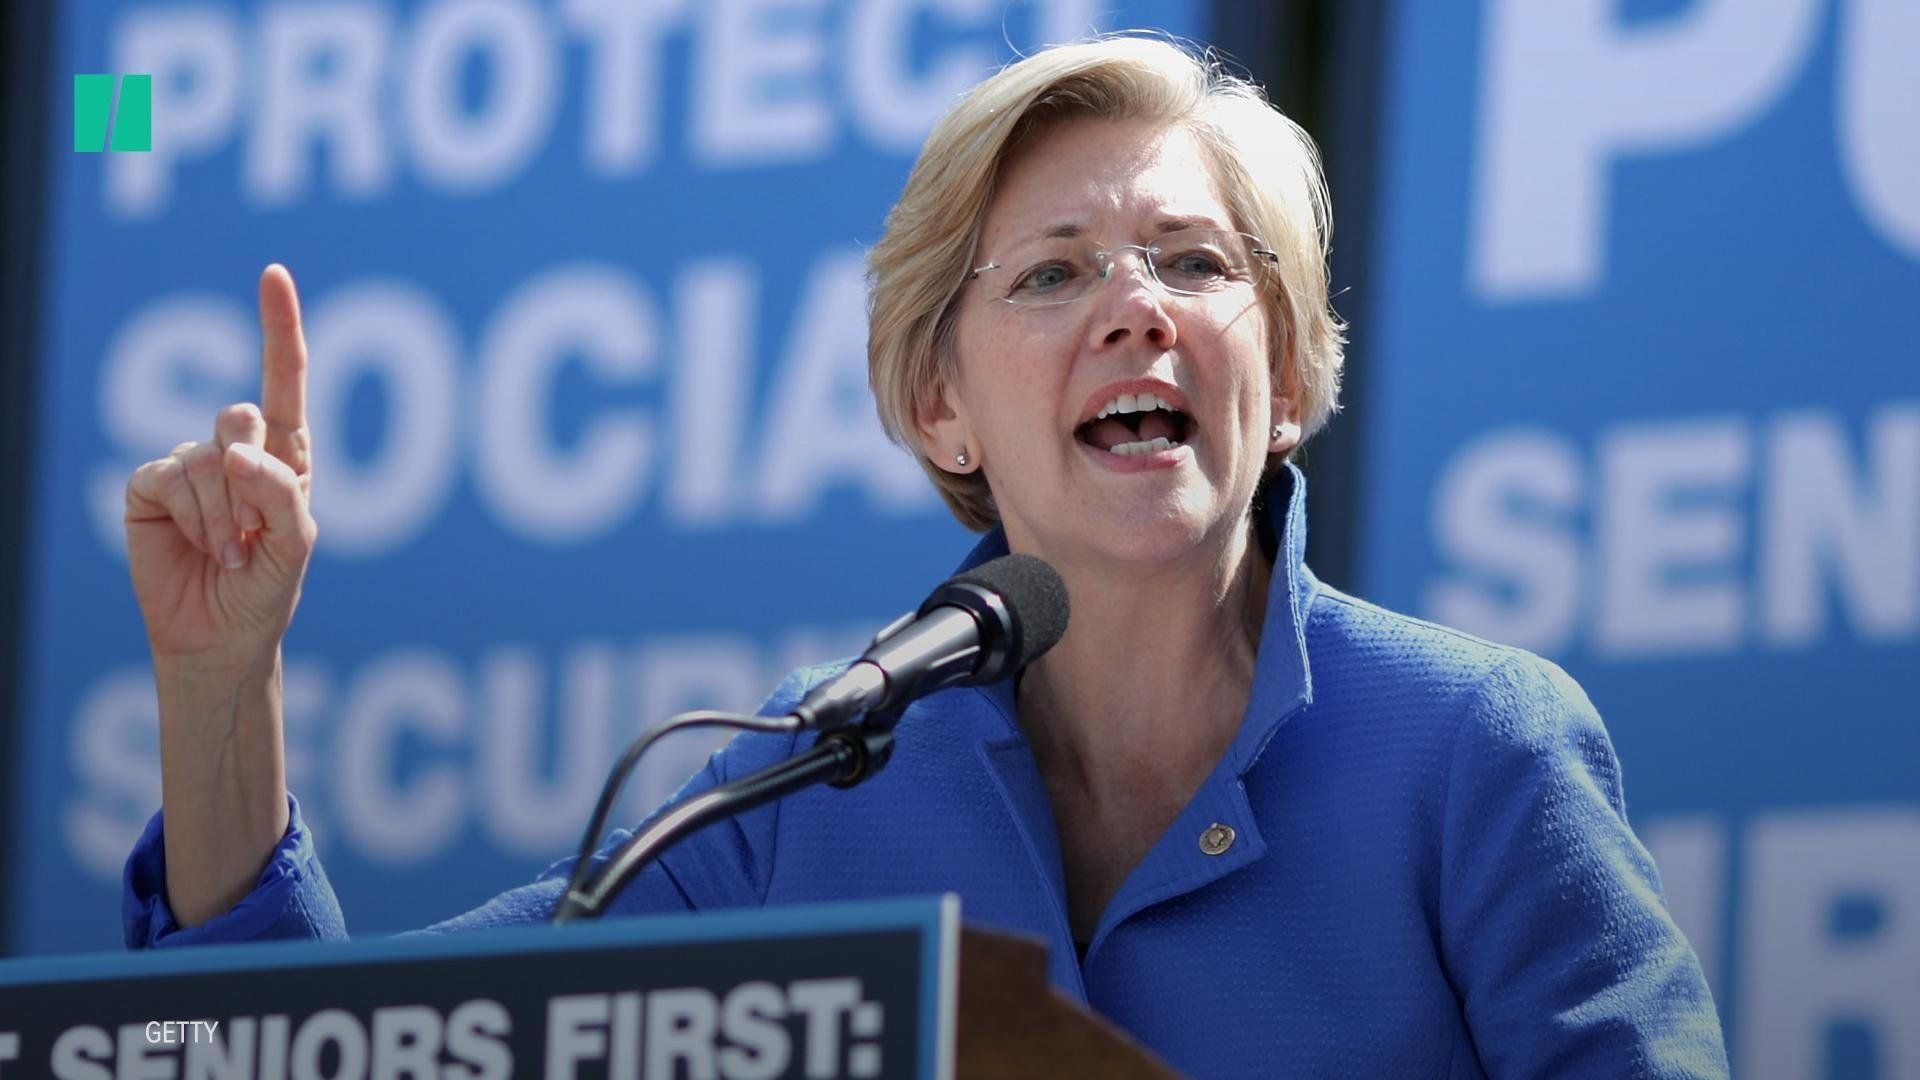 After Years Of Ridicule From Trump, Warren Proves Native American Ancestry